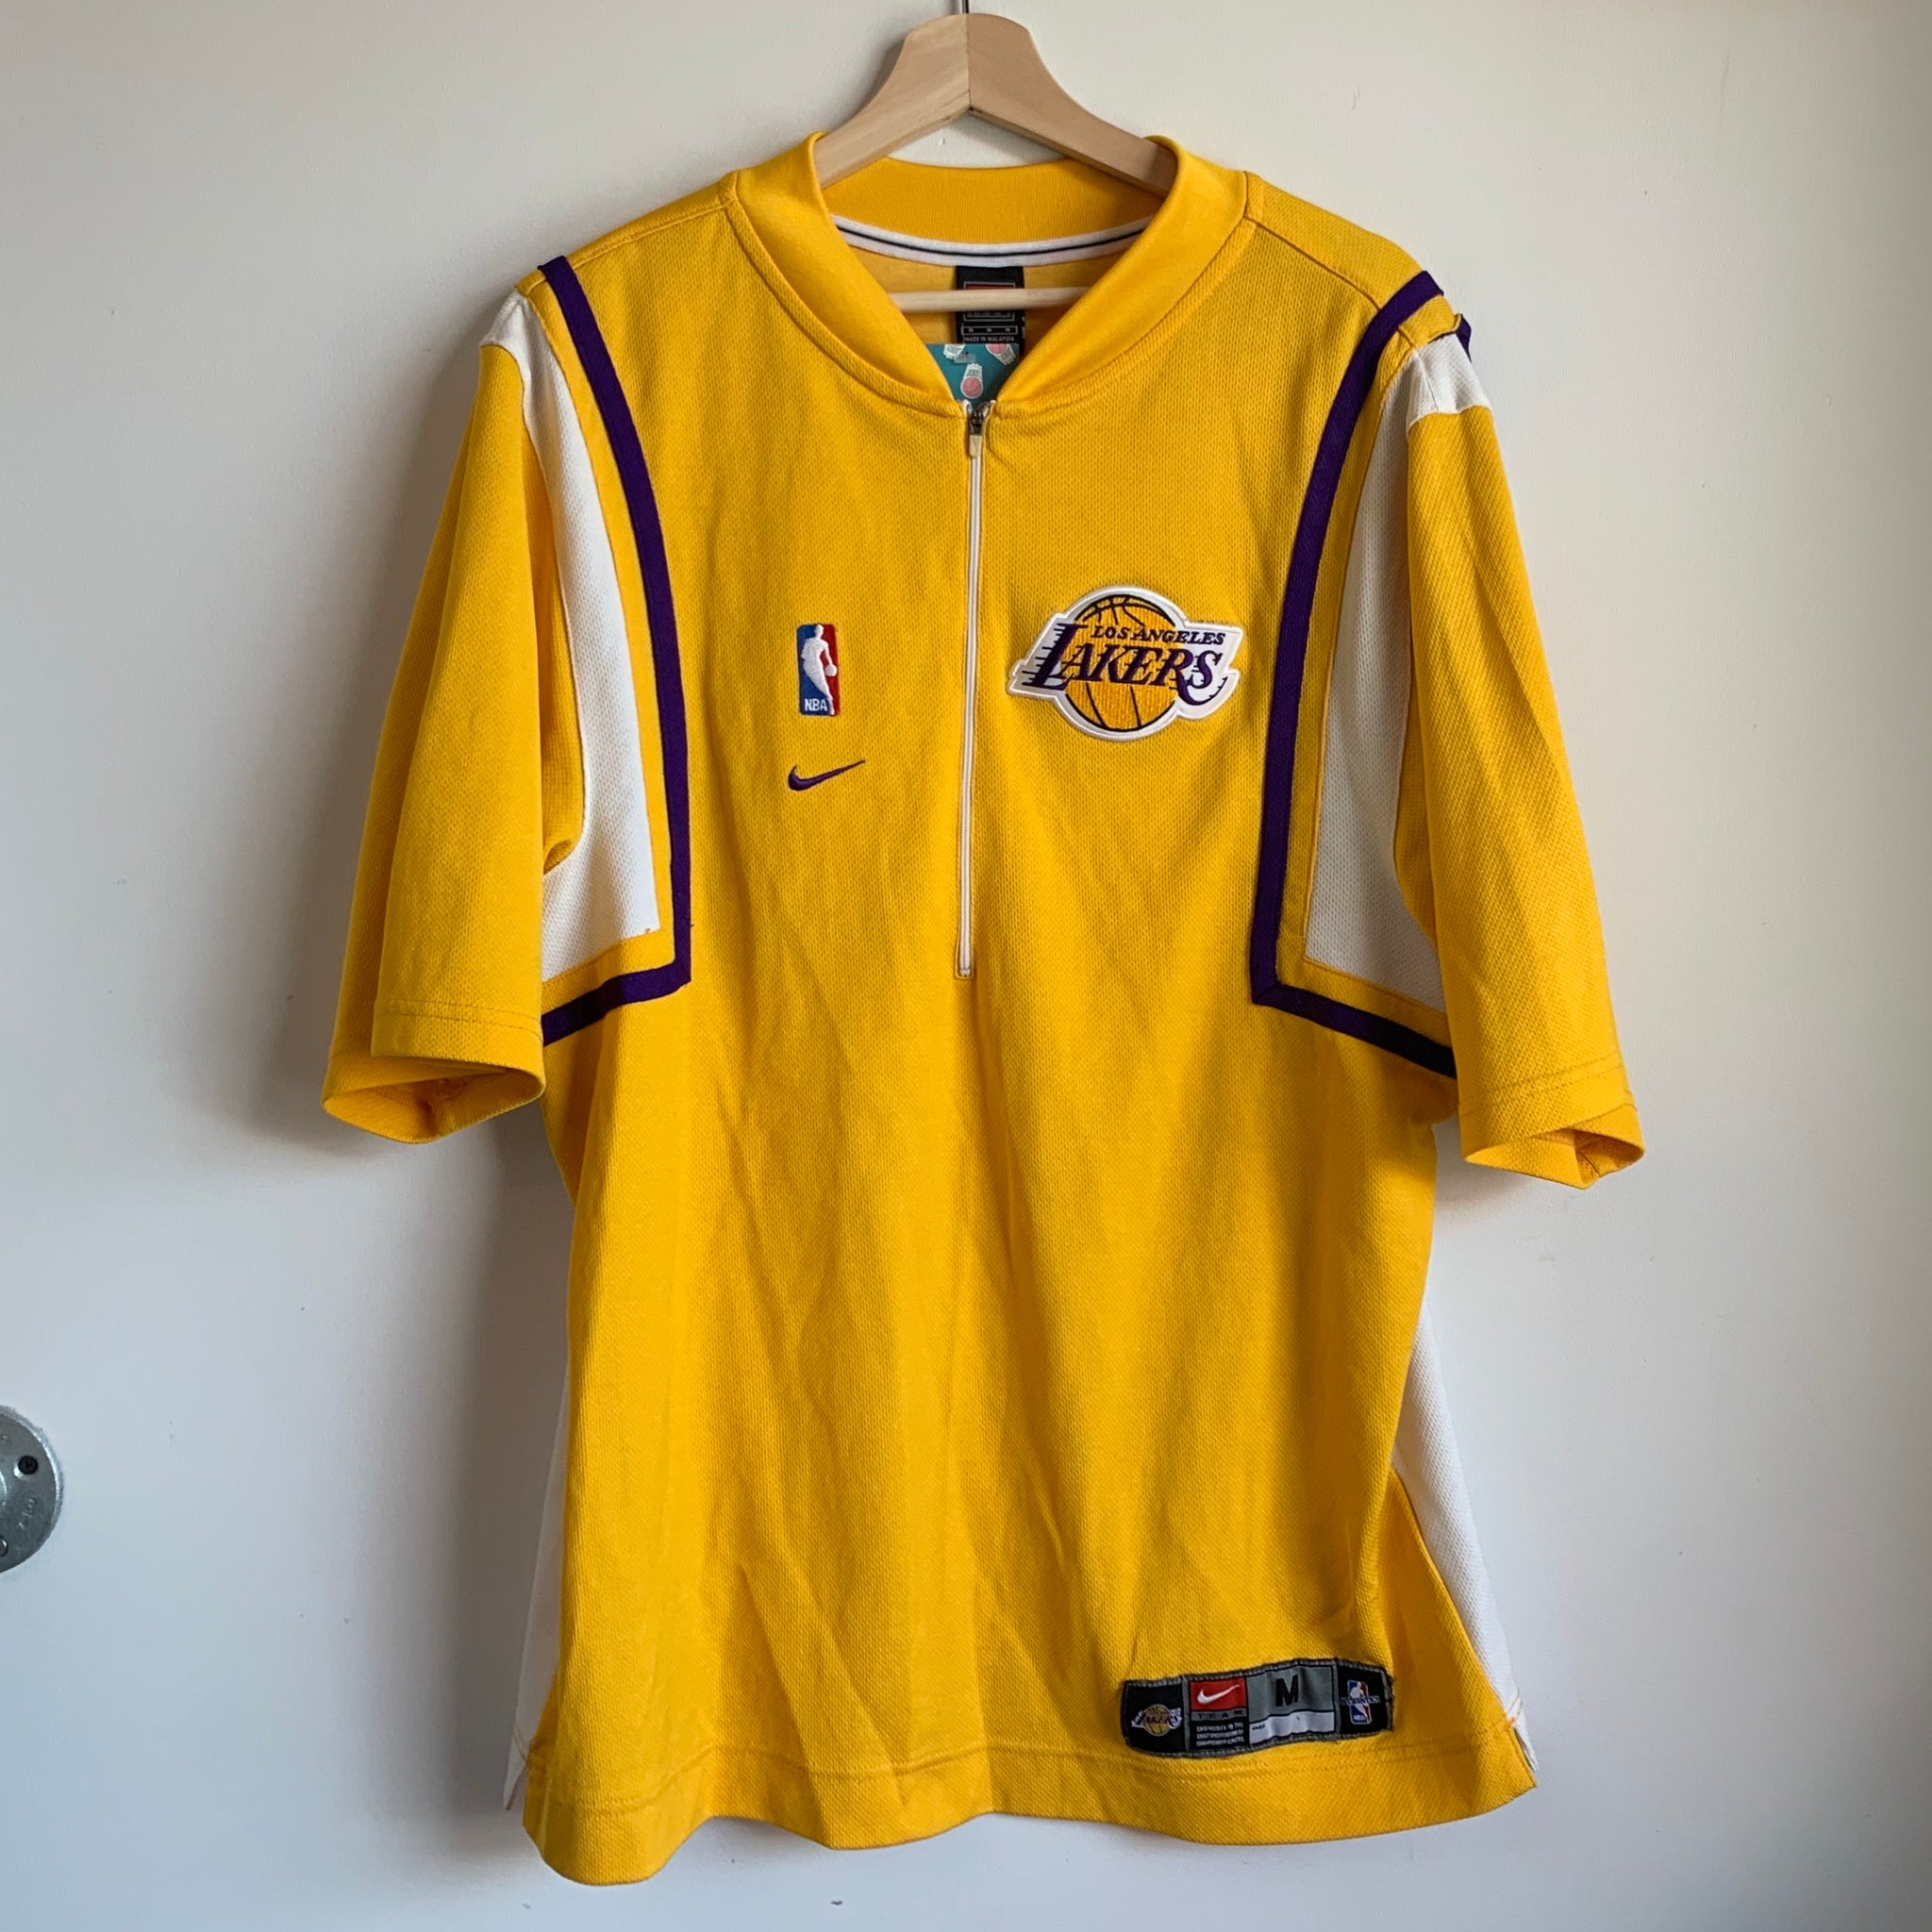 Nike Los Angeles Lakers Basketball Warmup Shooting Shirt